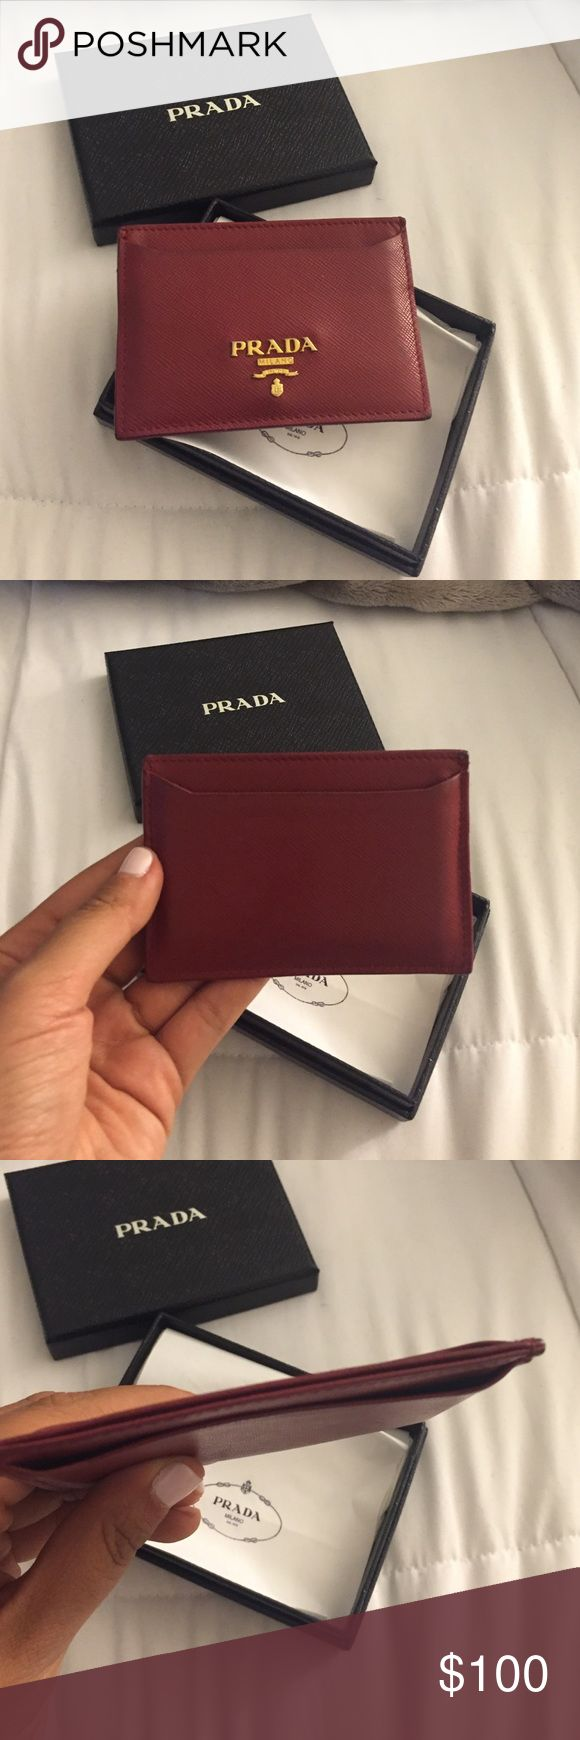 Prada Card Case Used but in excellent condition! Comes with box and bag!! Perfect card holder Prada Accessories Key & Card Holders